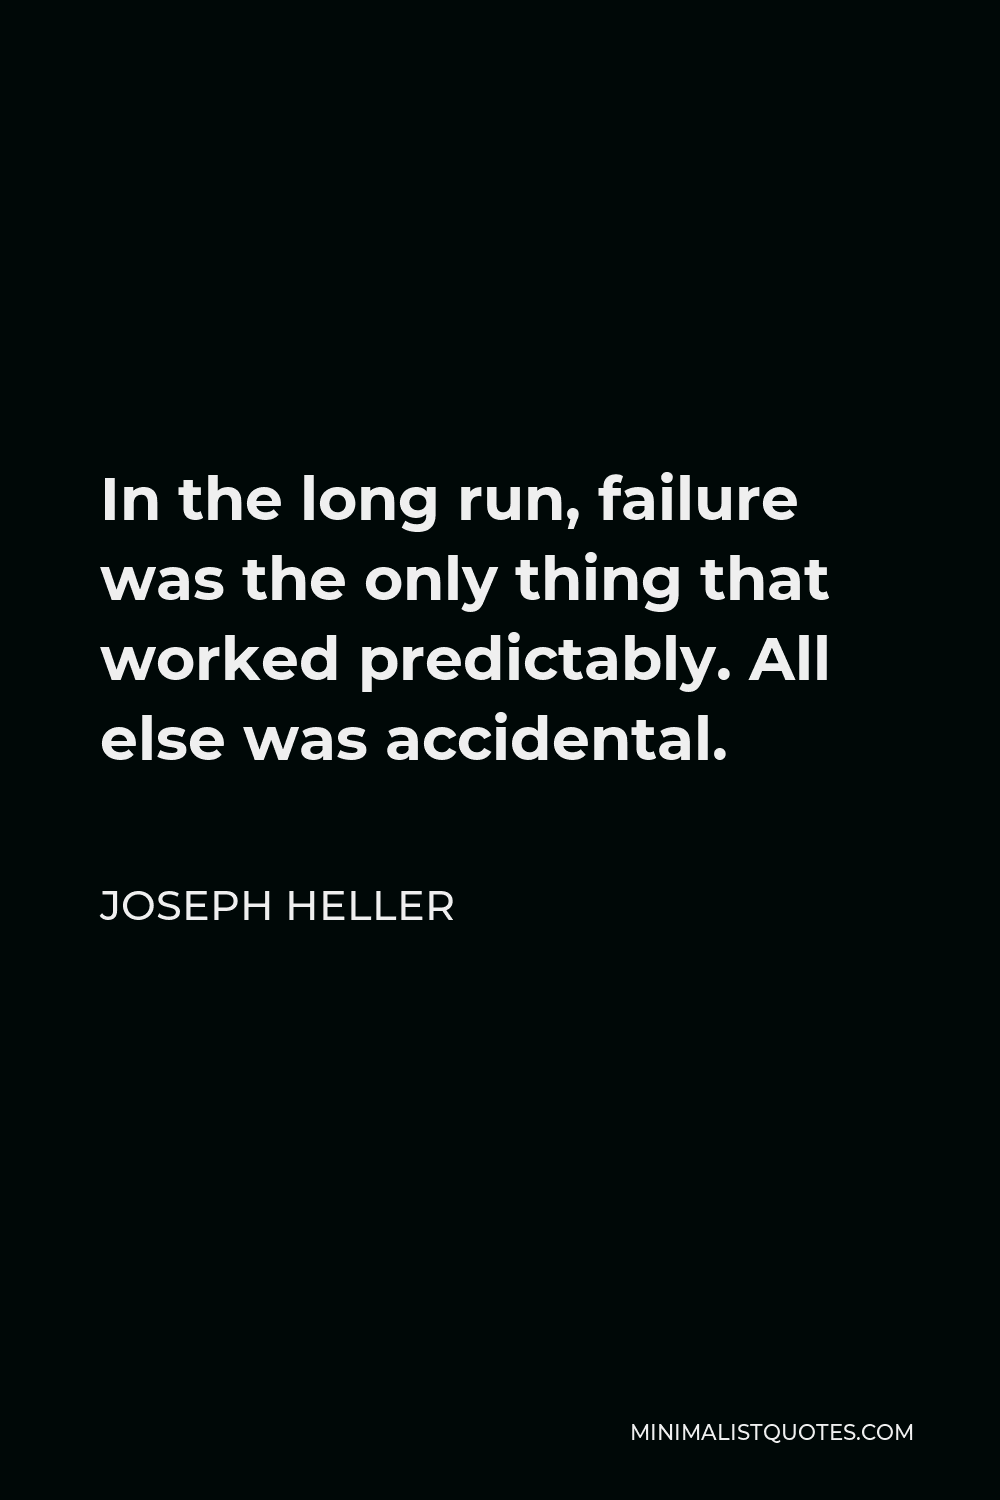 Joseph Heller Quote - In the long run, failure was the only thing that worked predictably. All else was accidental.